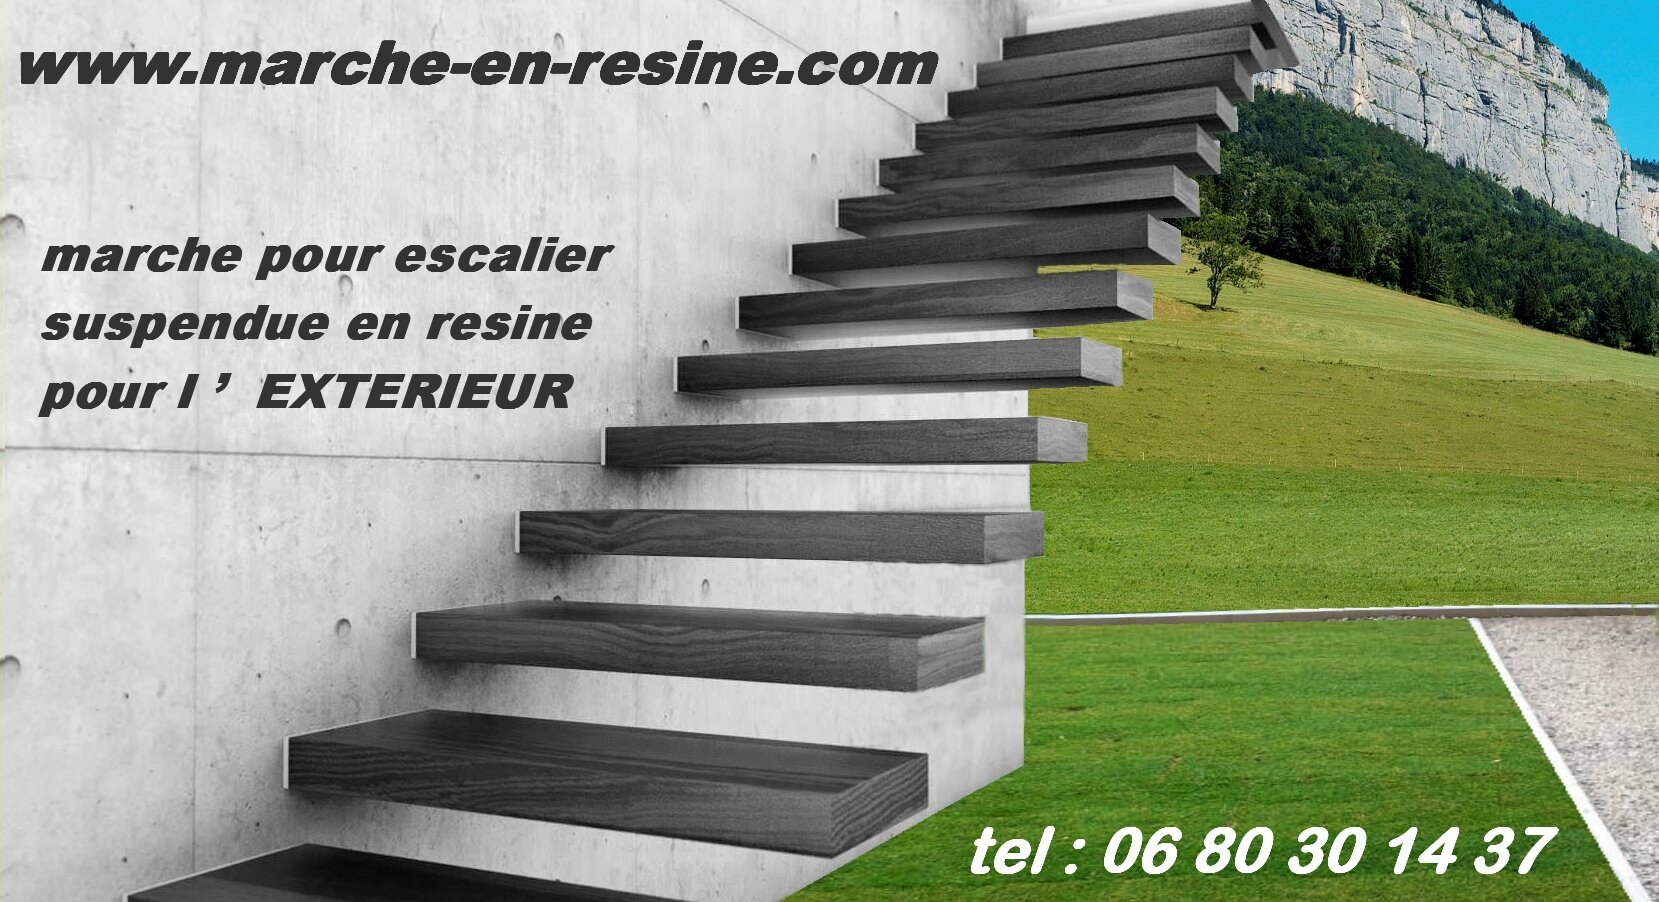 escalier suspendu escalier suspendu prix escalier suspendu fixation escalier suspendu mur en. Black Bedroom Furniture Sets. Home Design Ideas